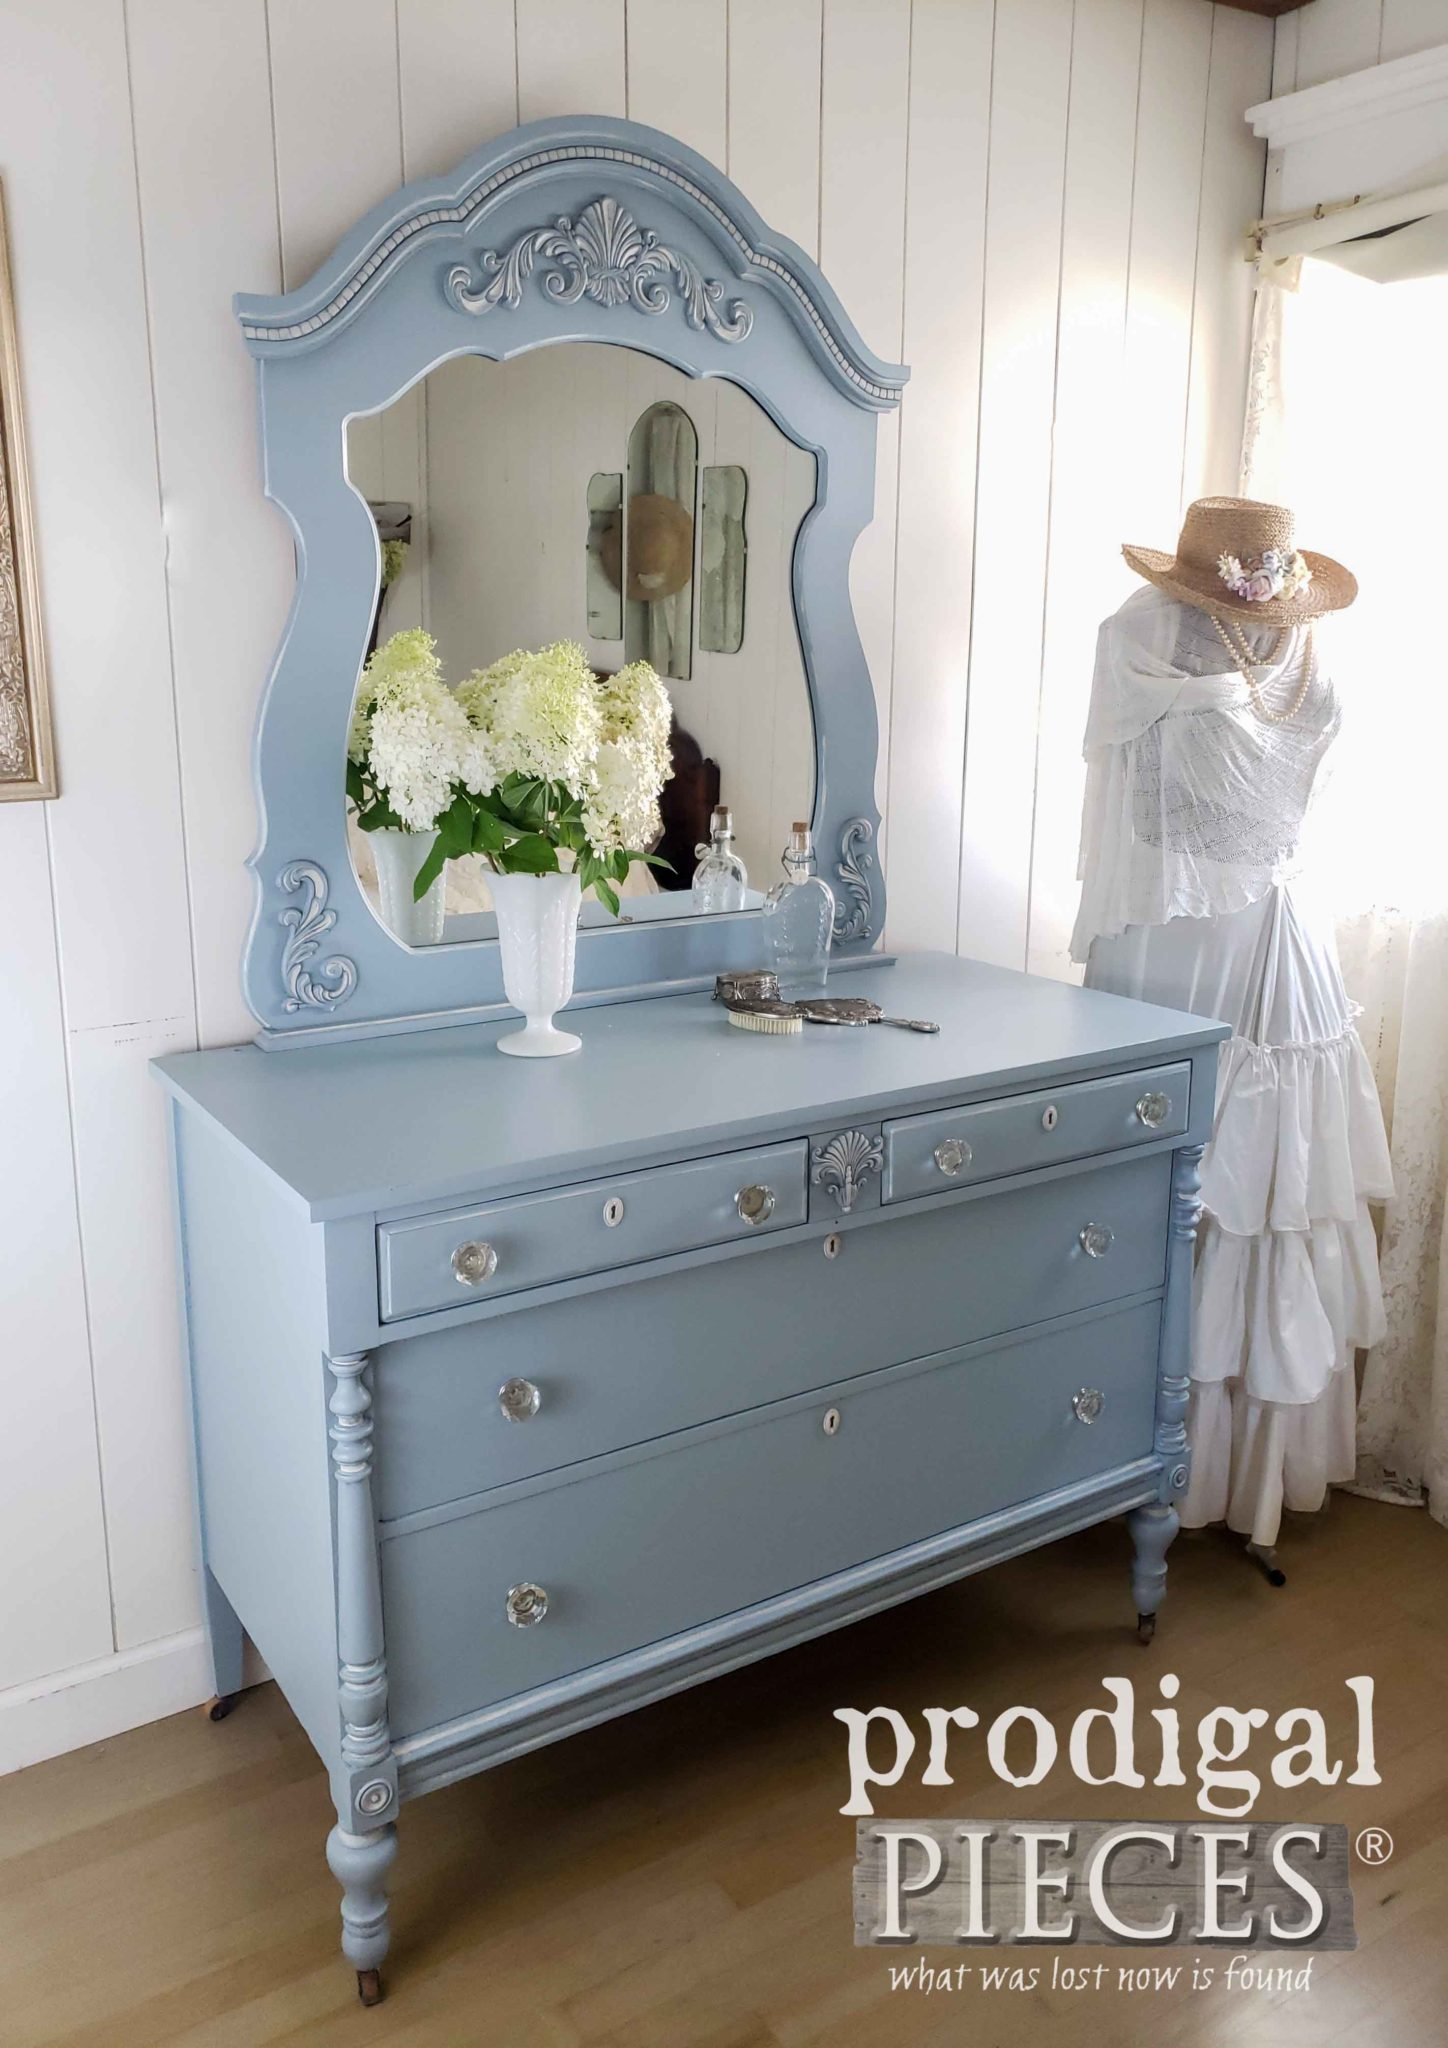 Beautiful Blue Vintage Mirrored Dresser by Larissa of Prodigal Pieces | prodigalpieces.com